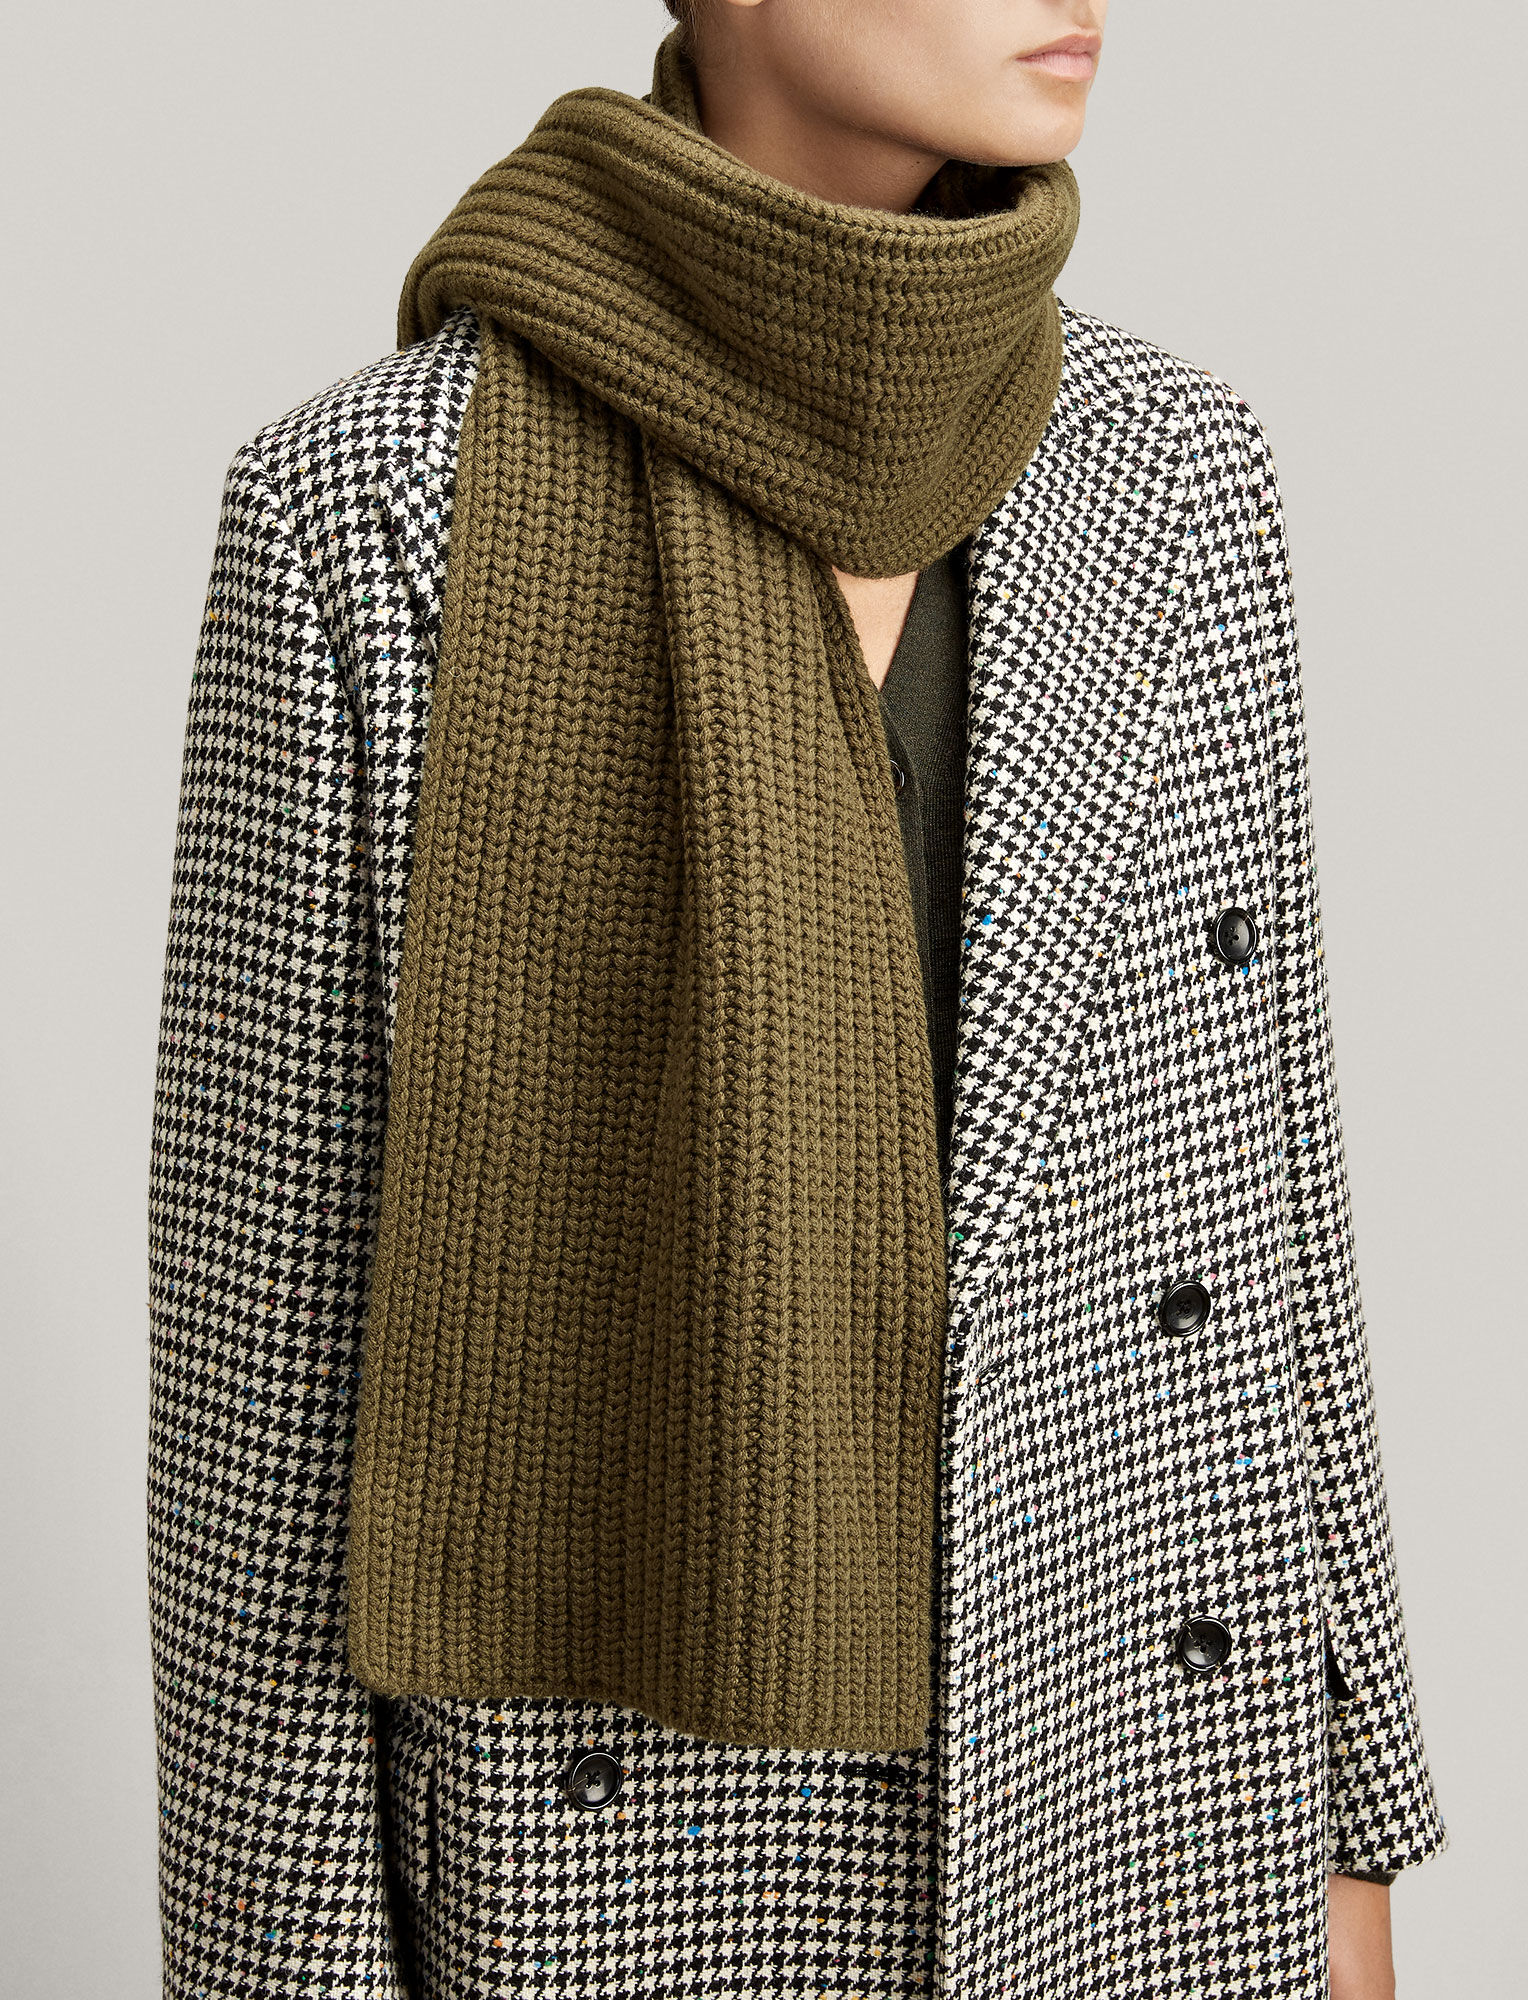 Joseph, Soft Wool Scarf, in MILITARY